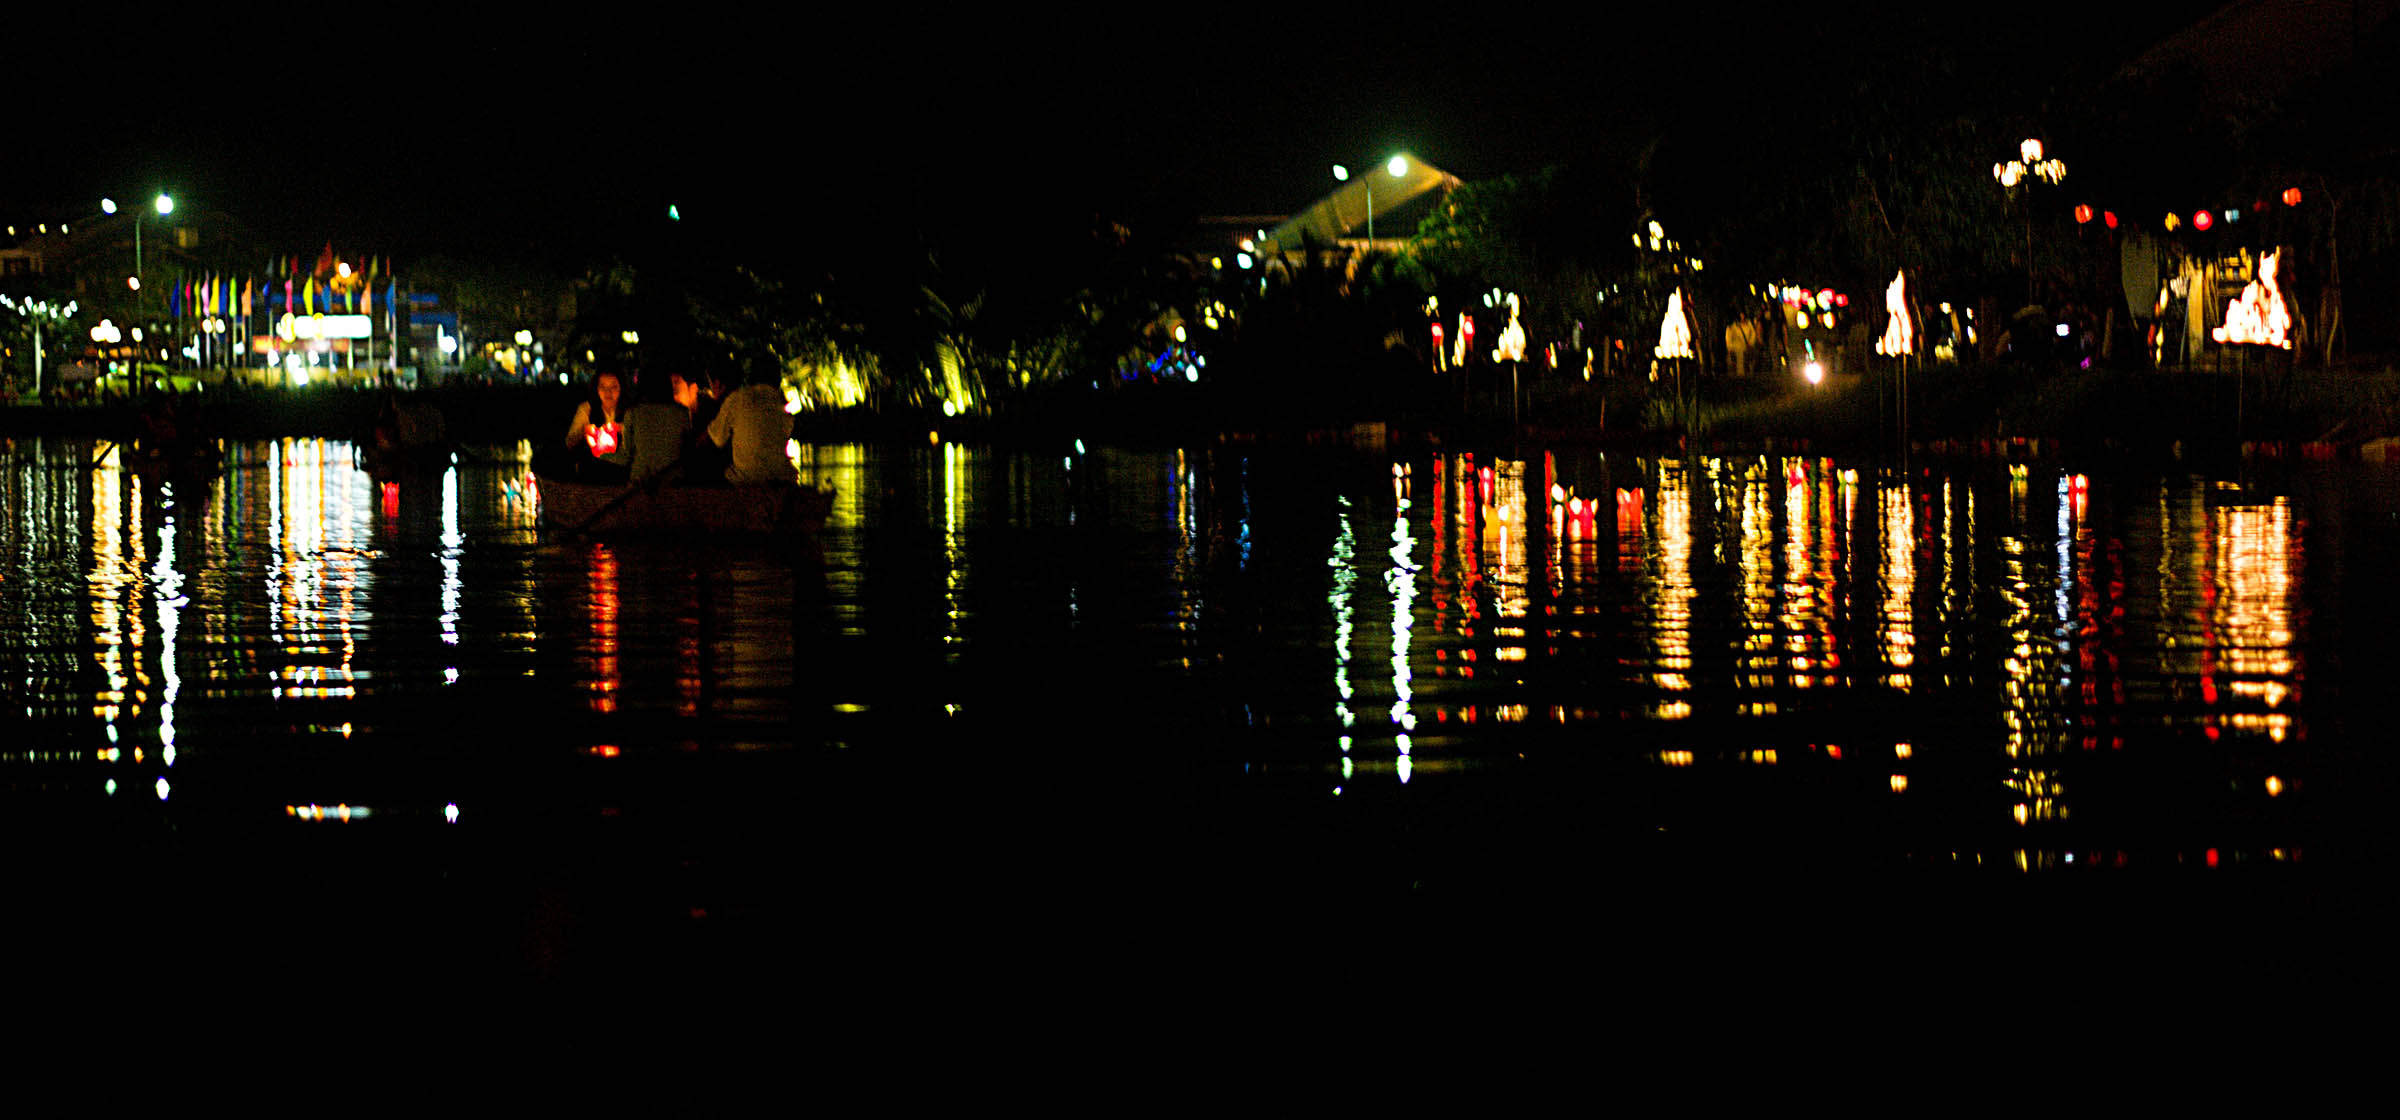 Hoi An night lights